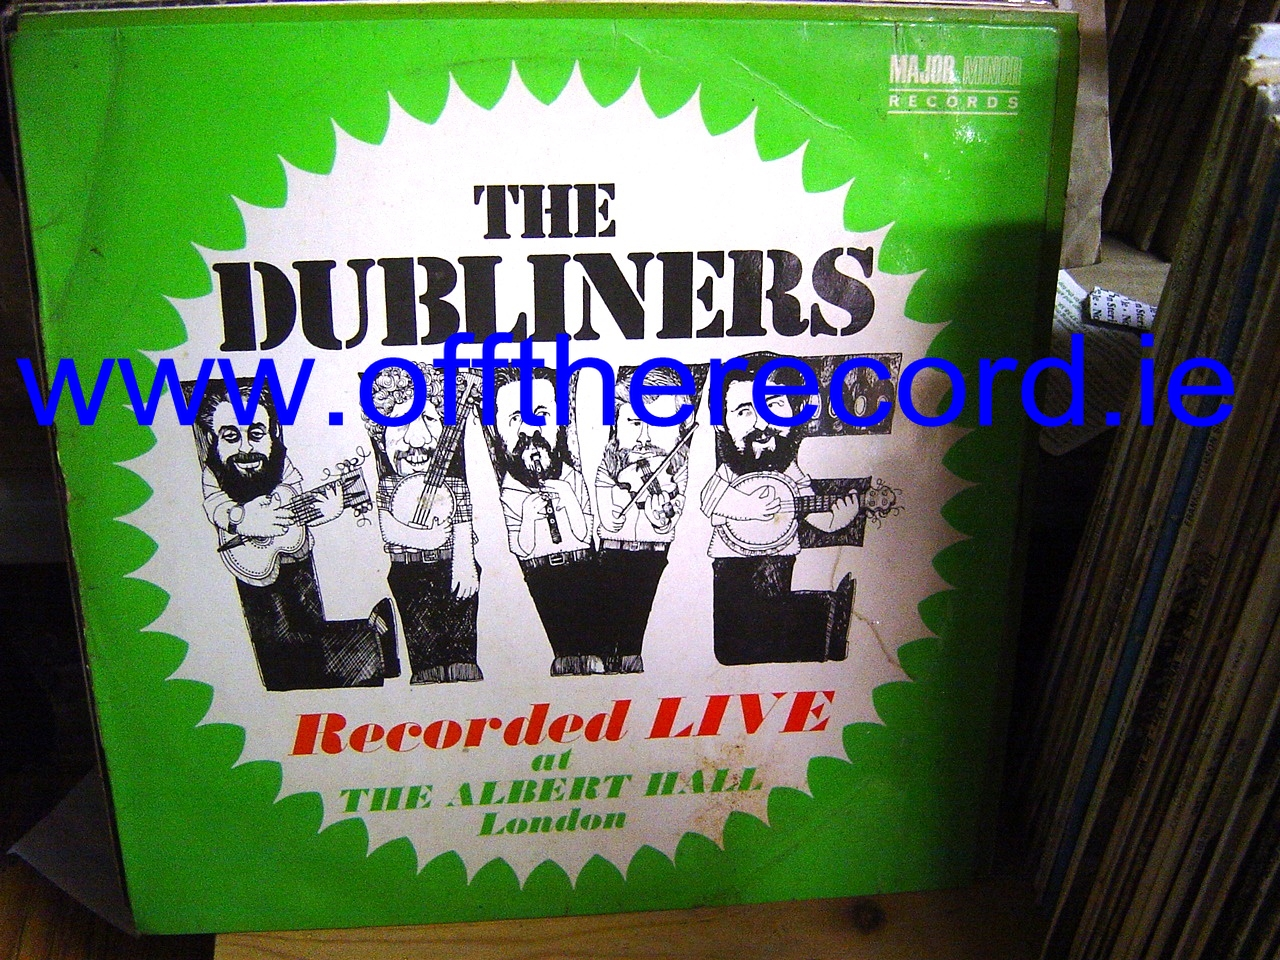 The Dubliners - Live in Albert Hall - Major Minor Records